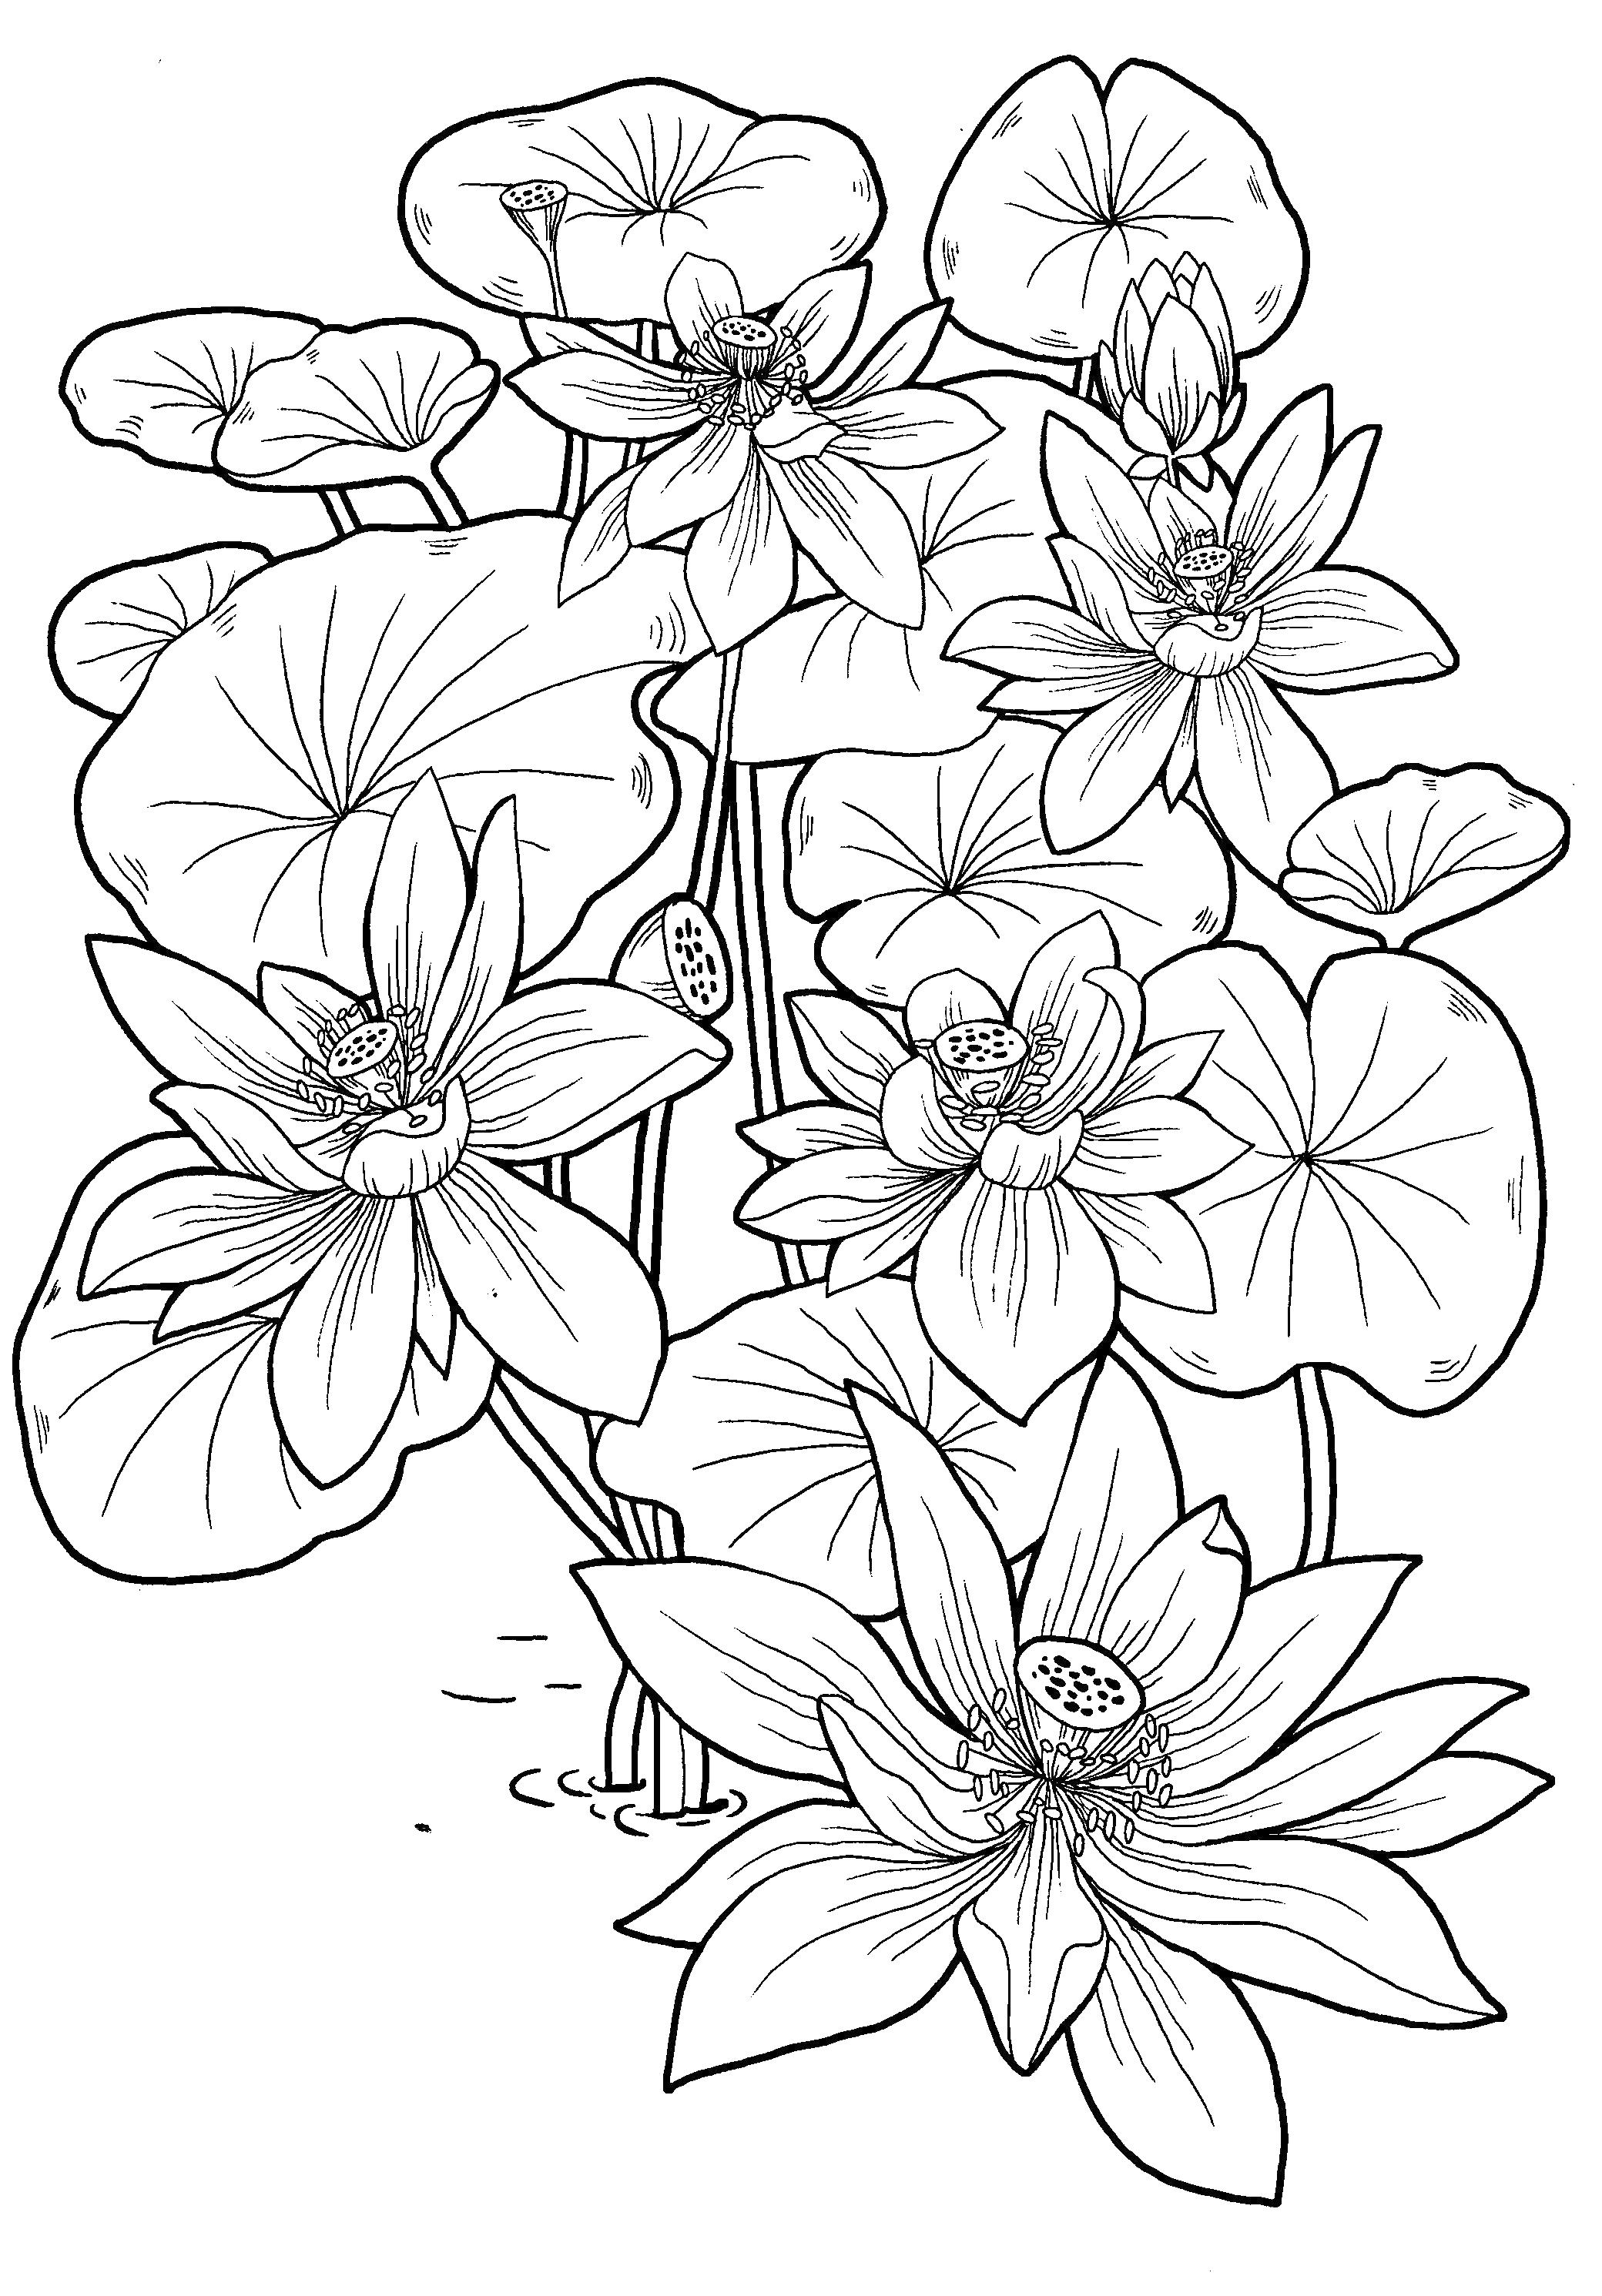 coloring pages 9 year old coloring pages for 8910 year old girls to download and 9 pages year coloring old